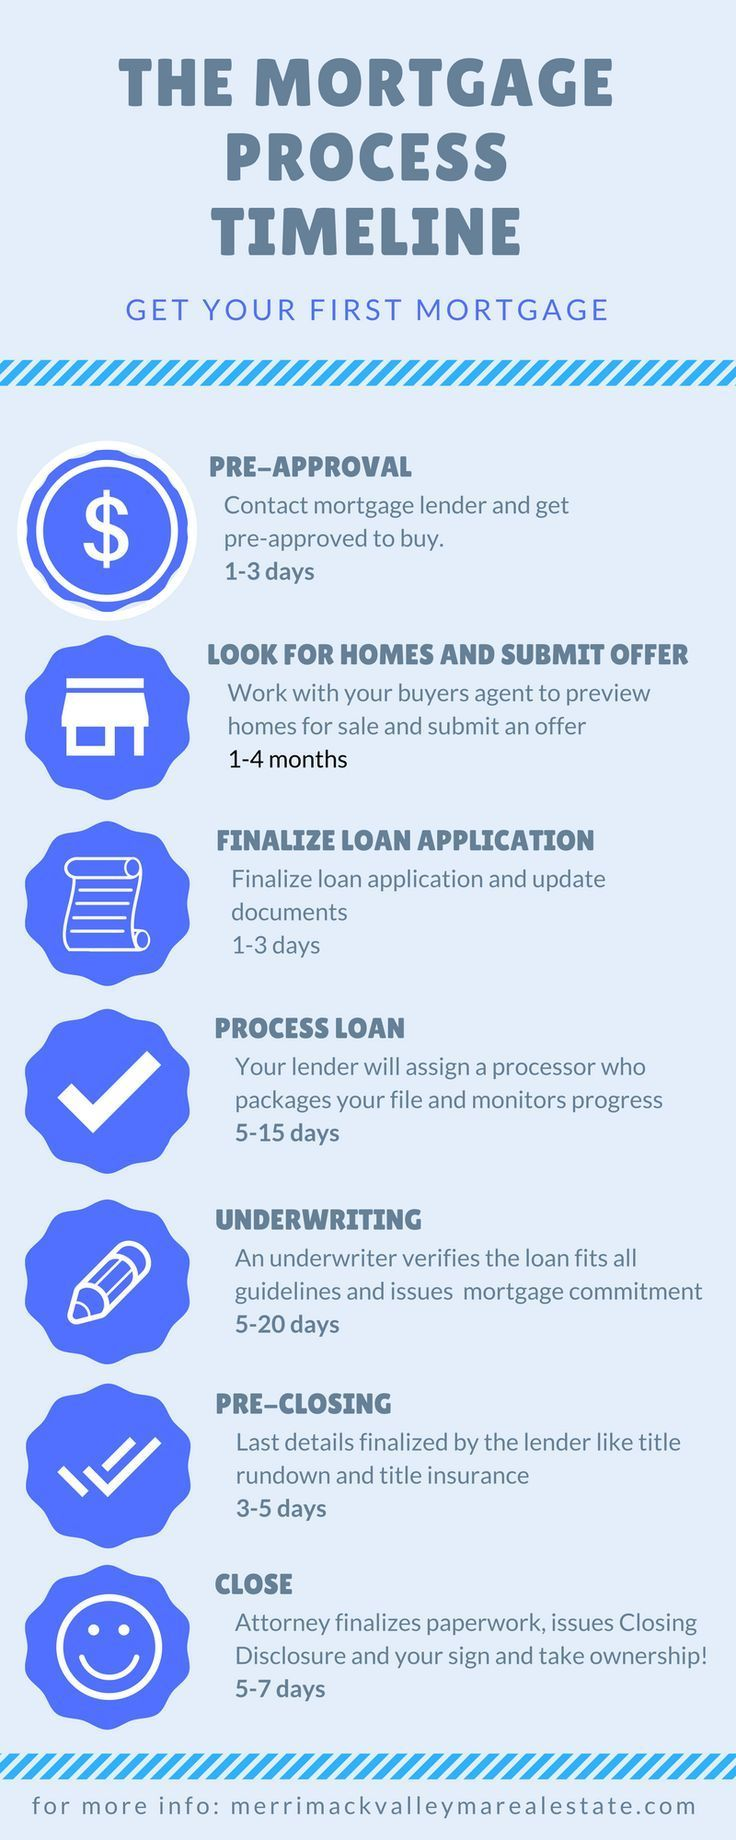 Timeline Of The Mortgage Process Getting Your First Mortgage Merrimackvalleyma Mortgage Loan Origi Buying Your First Home Home Mortgage Home Buying Process